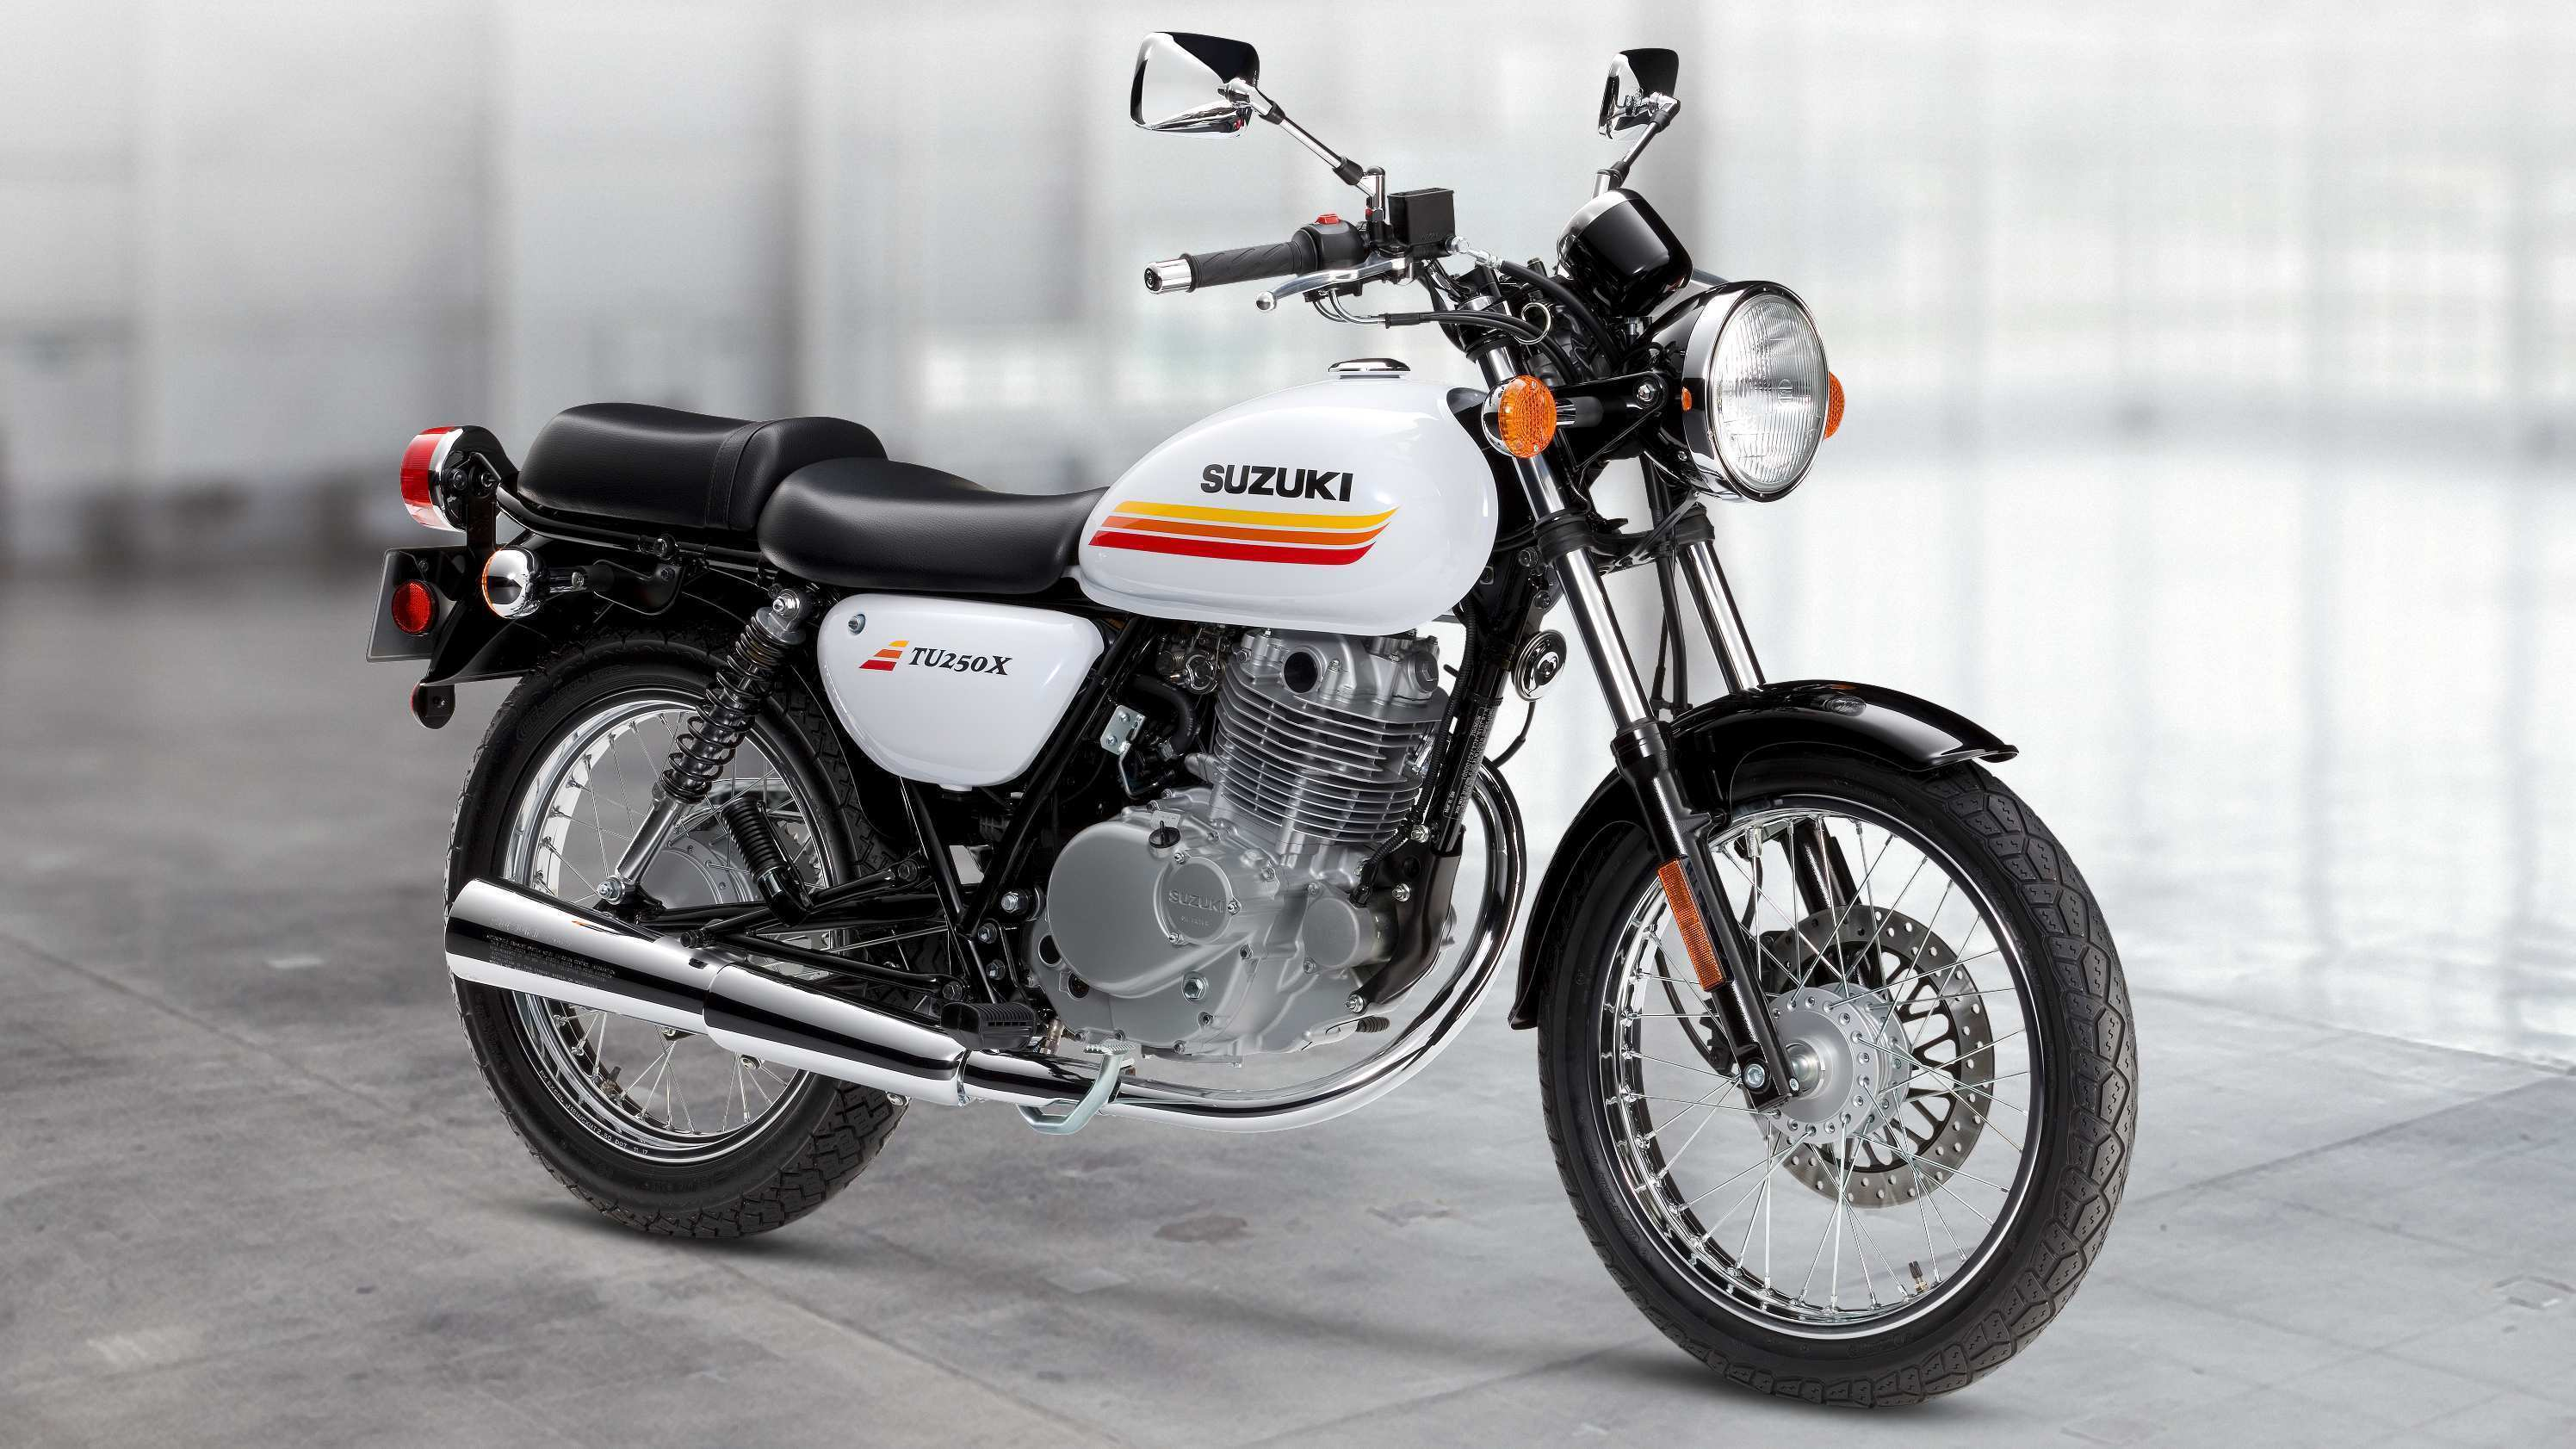 49 New 2019 Suzuki Tu250X Reviews for 2019 Suzuki Tu250X